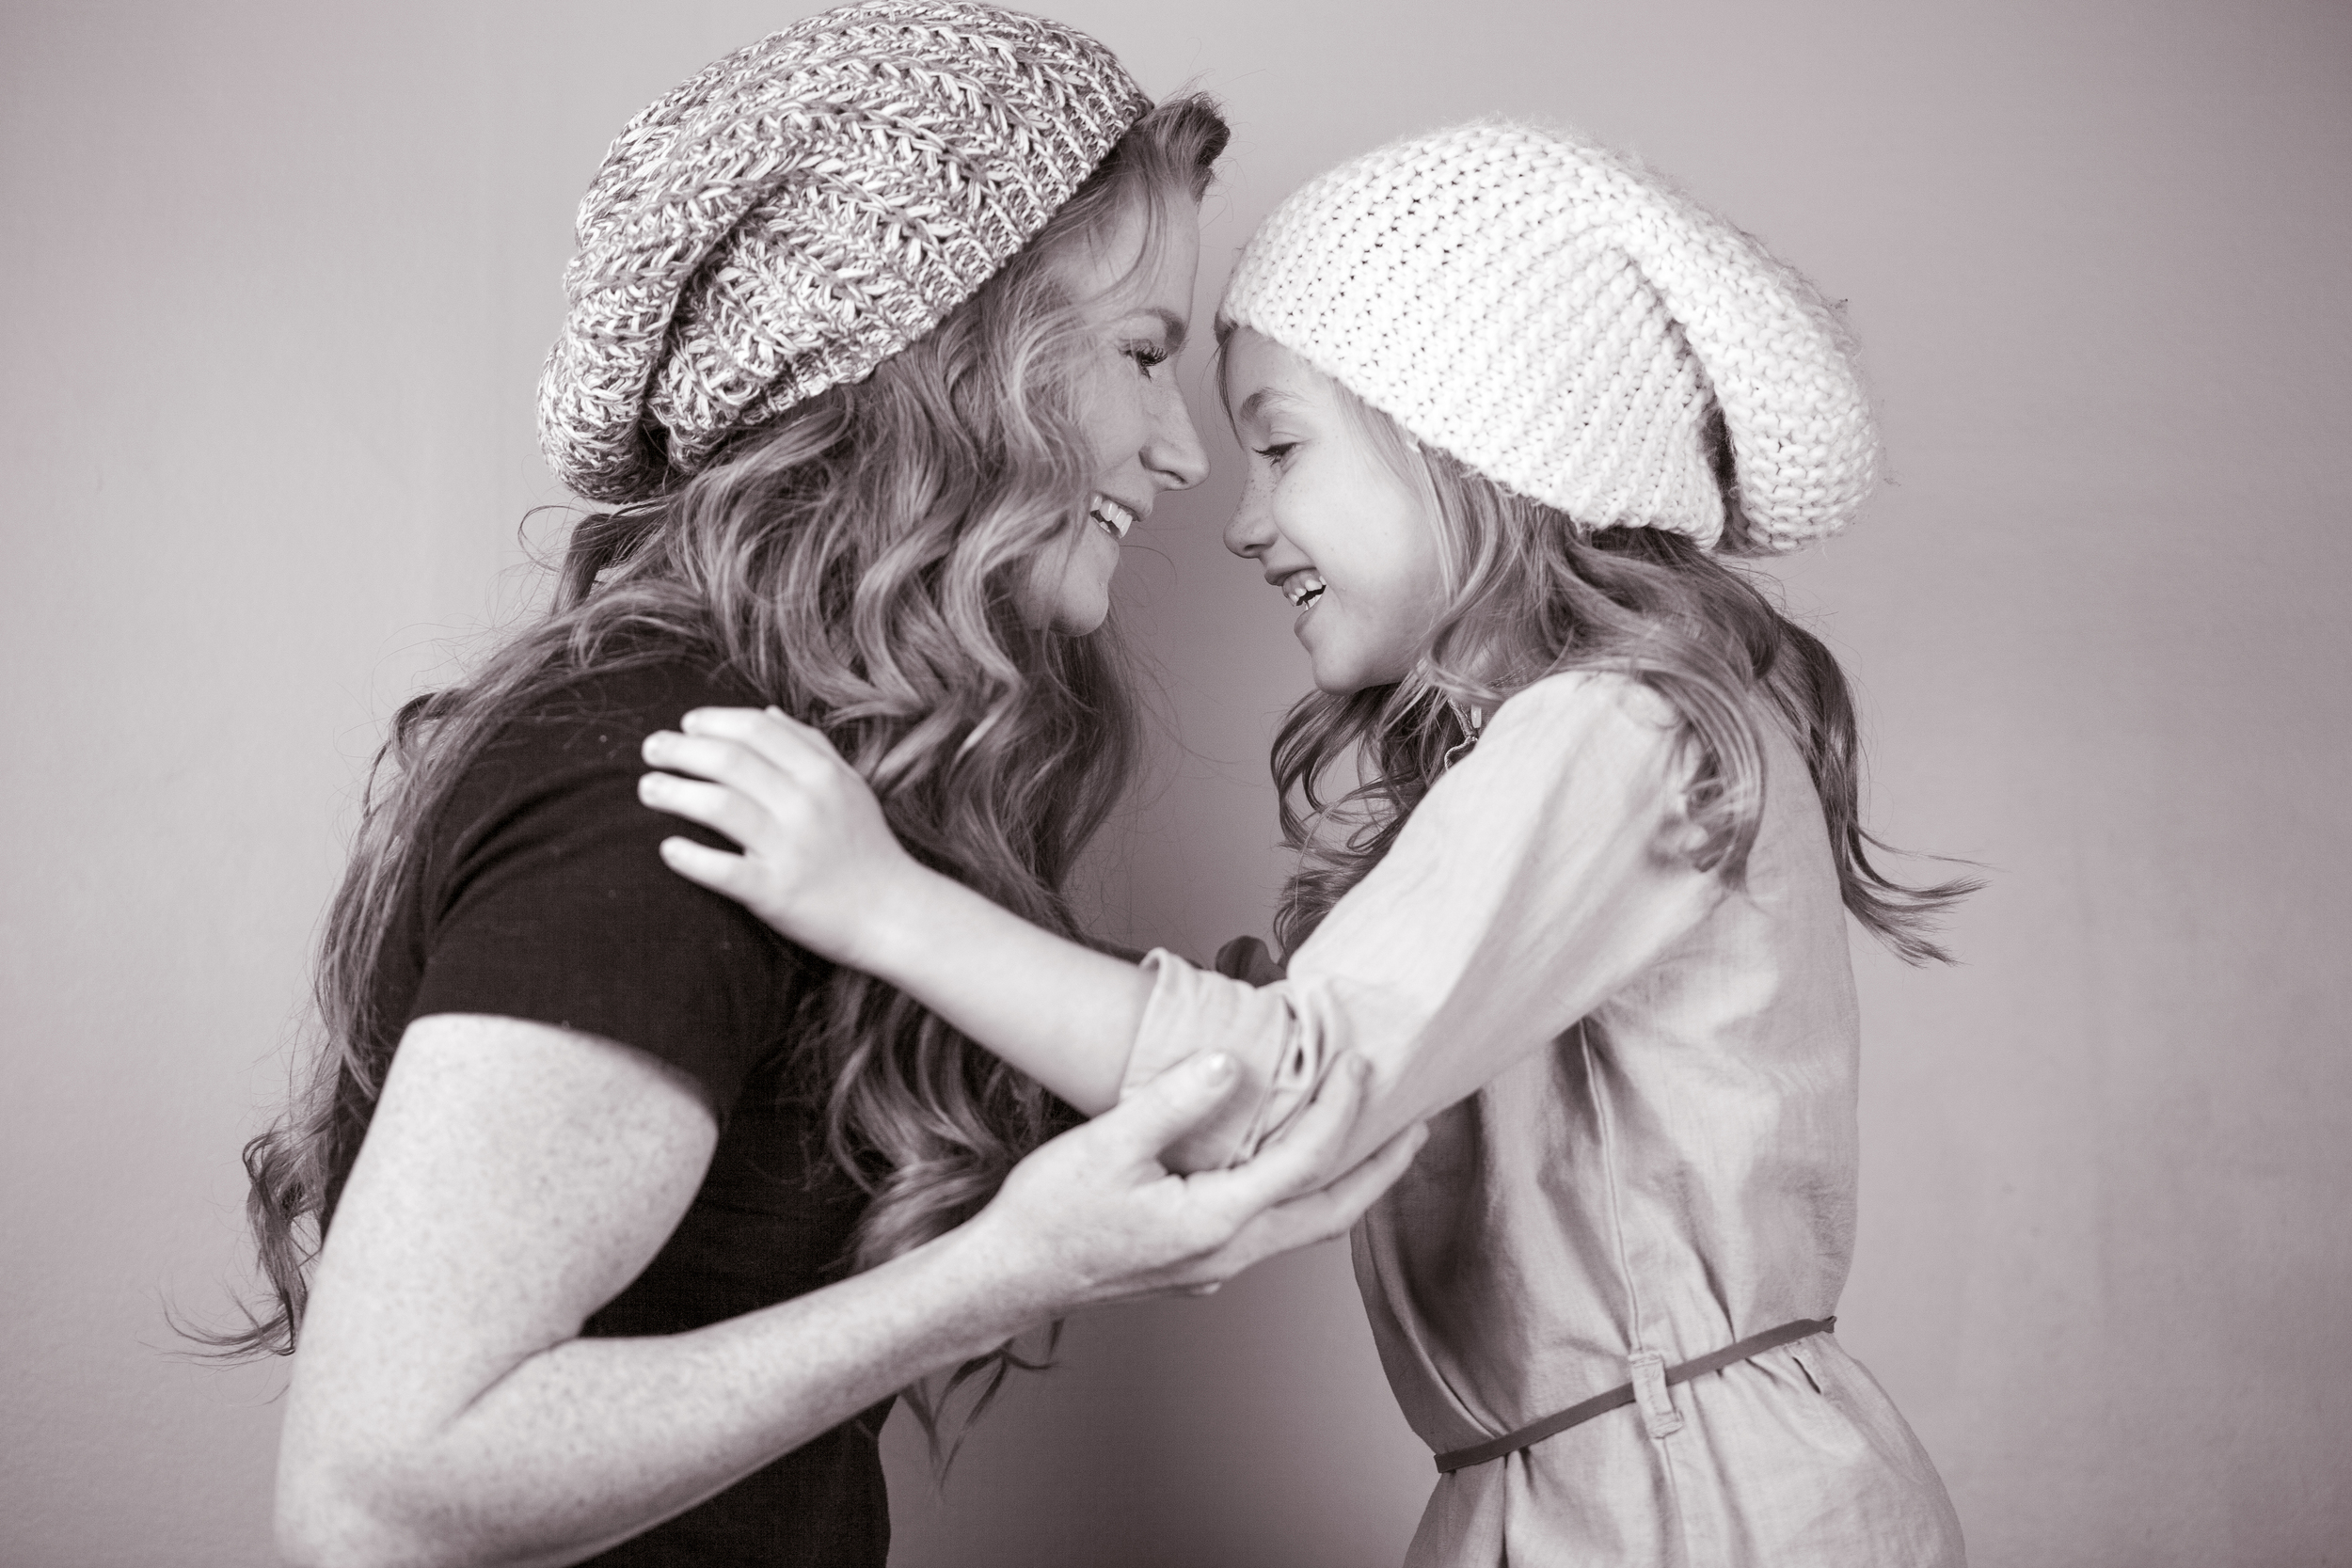 mom daughter mommy me laugh studio black and white atlanta portrait photographer blonde curly hair marietta family kid